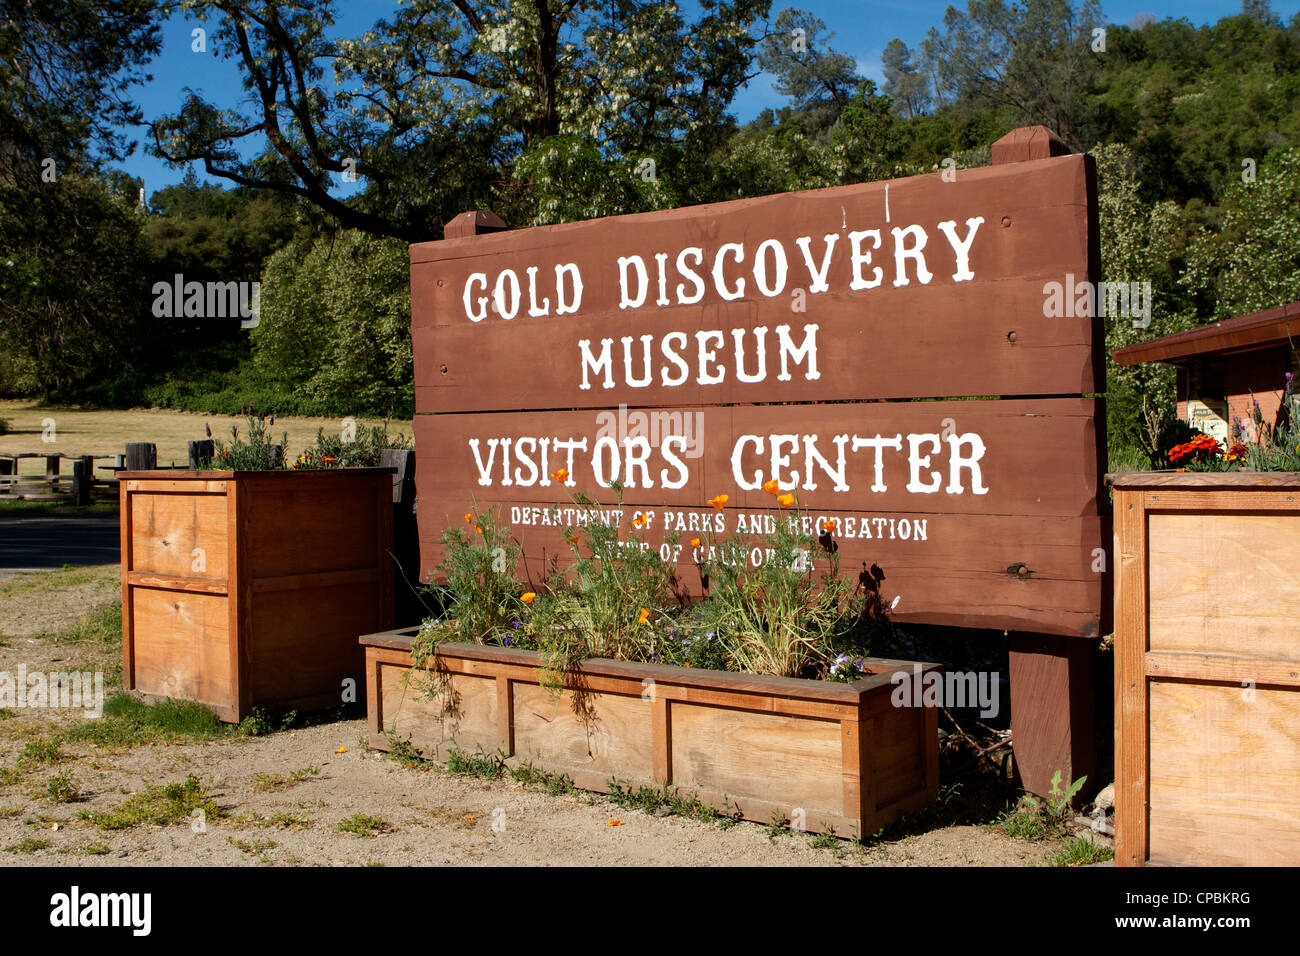 James Marshall gold discovery museum and visitor center sign Coloma Califonia - Stock Image